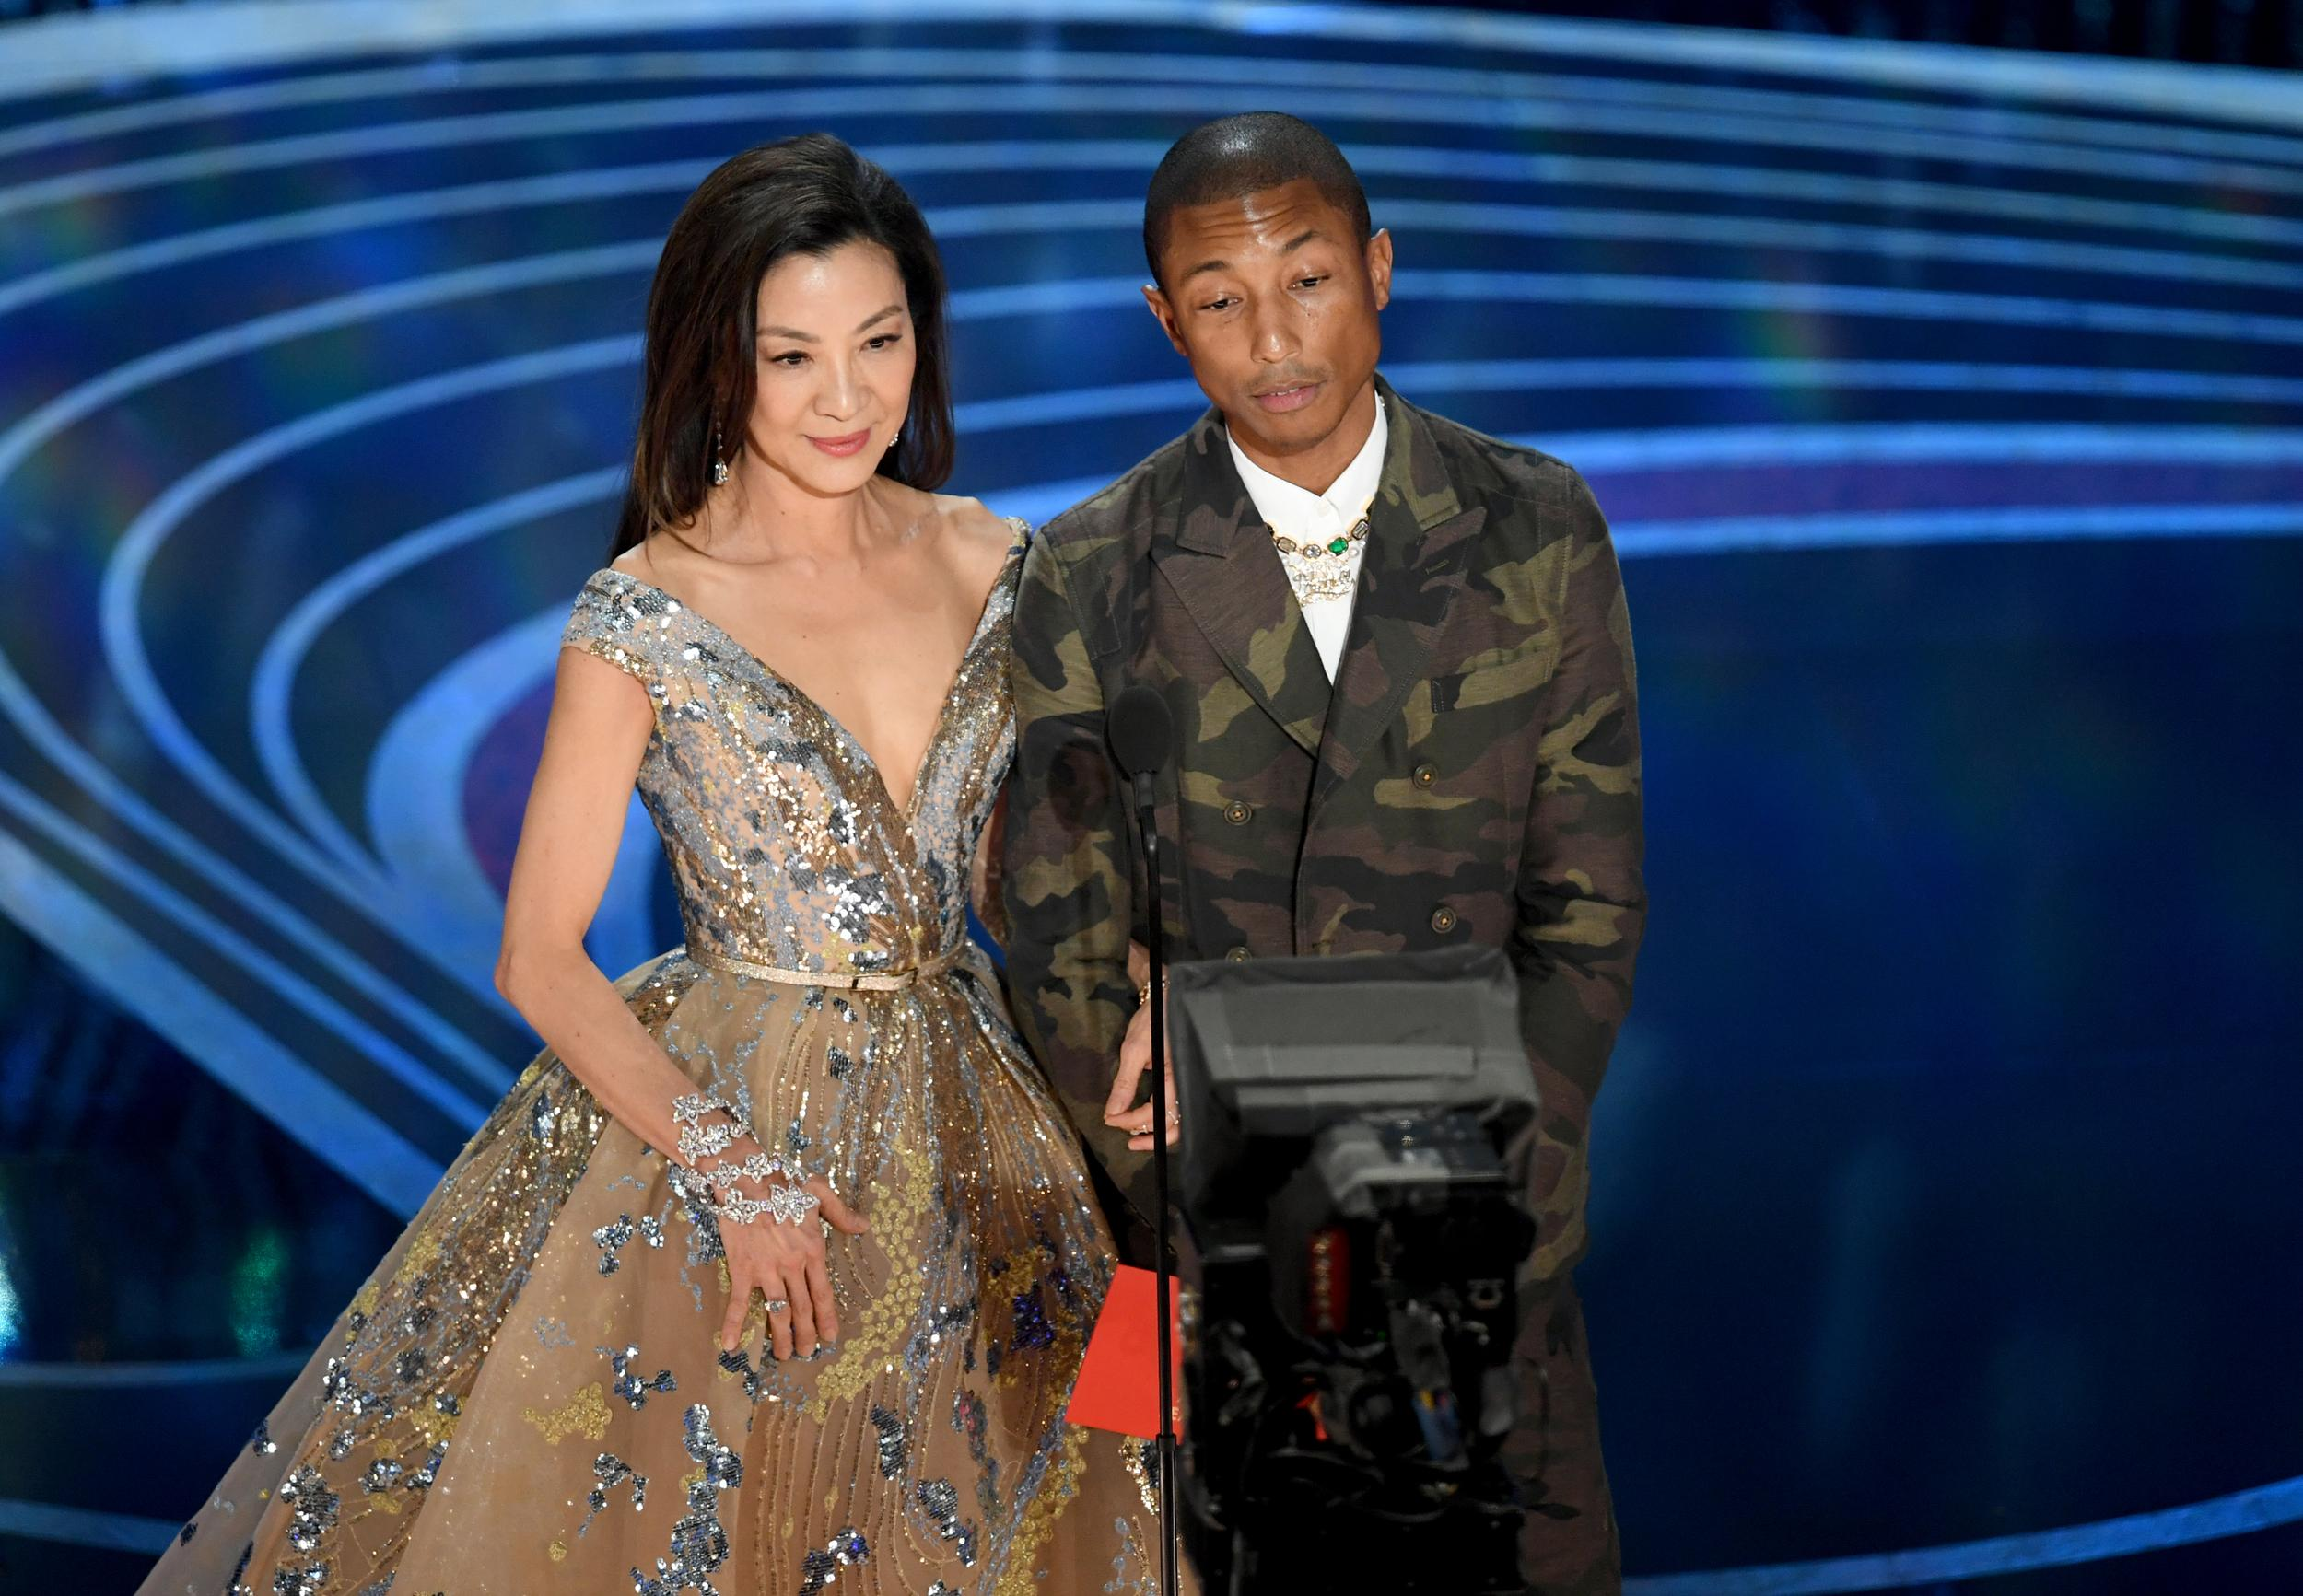 HOLLYWOOD, CALIFORNIA - FEBRUARY 24: (L-R) Michelle Yeoh and Pharrell Williams speak onstage during the 91st Annual Academy Awards at Dolby Theatre on February 24, 2019 in Hollywood, California. (Photo by Kevin Winter/Getty Images)